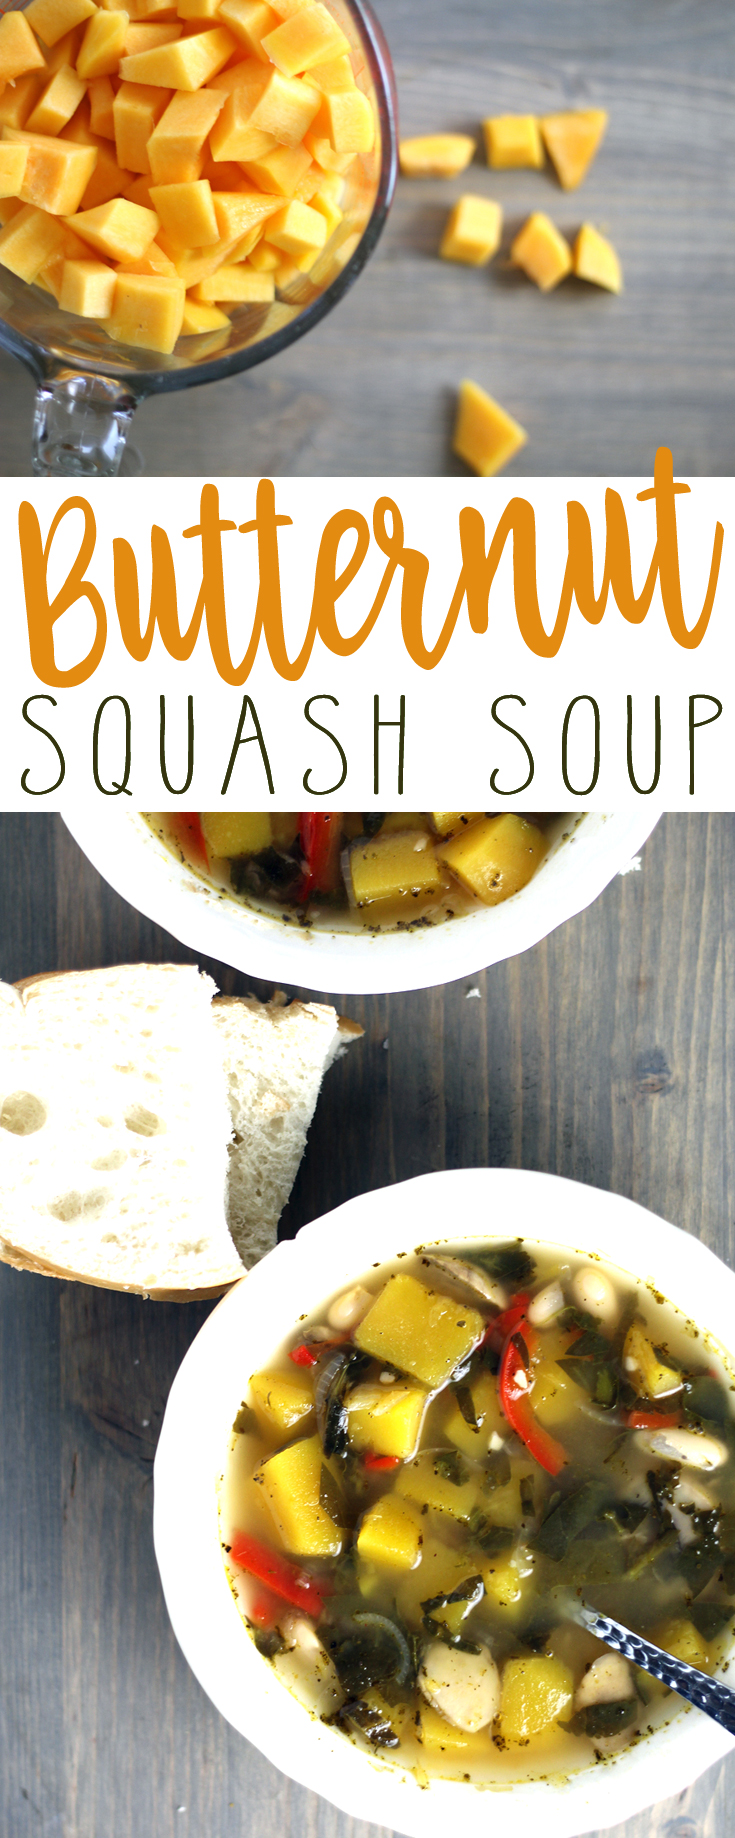 Butternut squash is such a lightly sweet vegetable. The color is bright and colorful and is the perfect addition to this simple and clean Butternut Squash Soup.